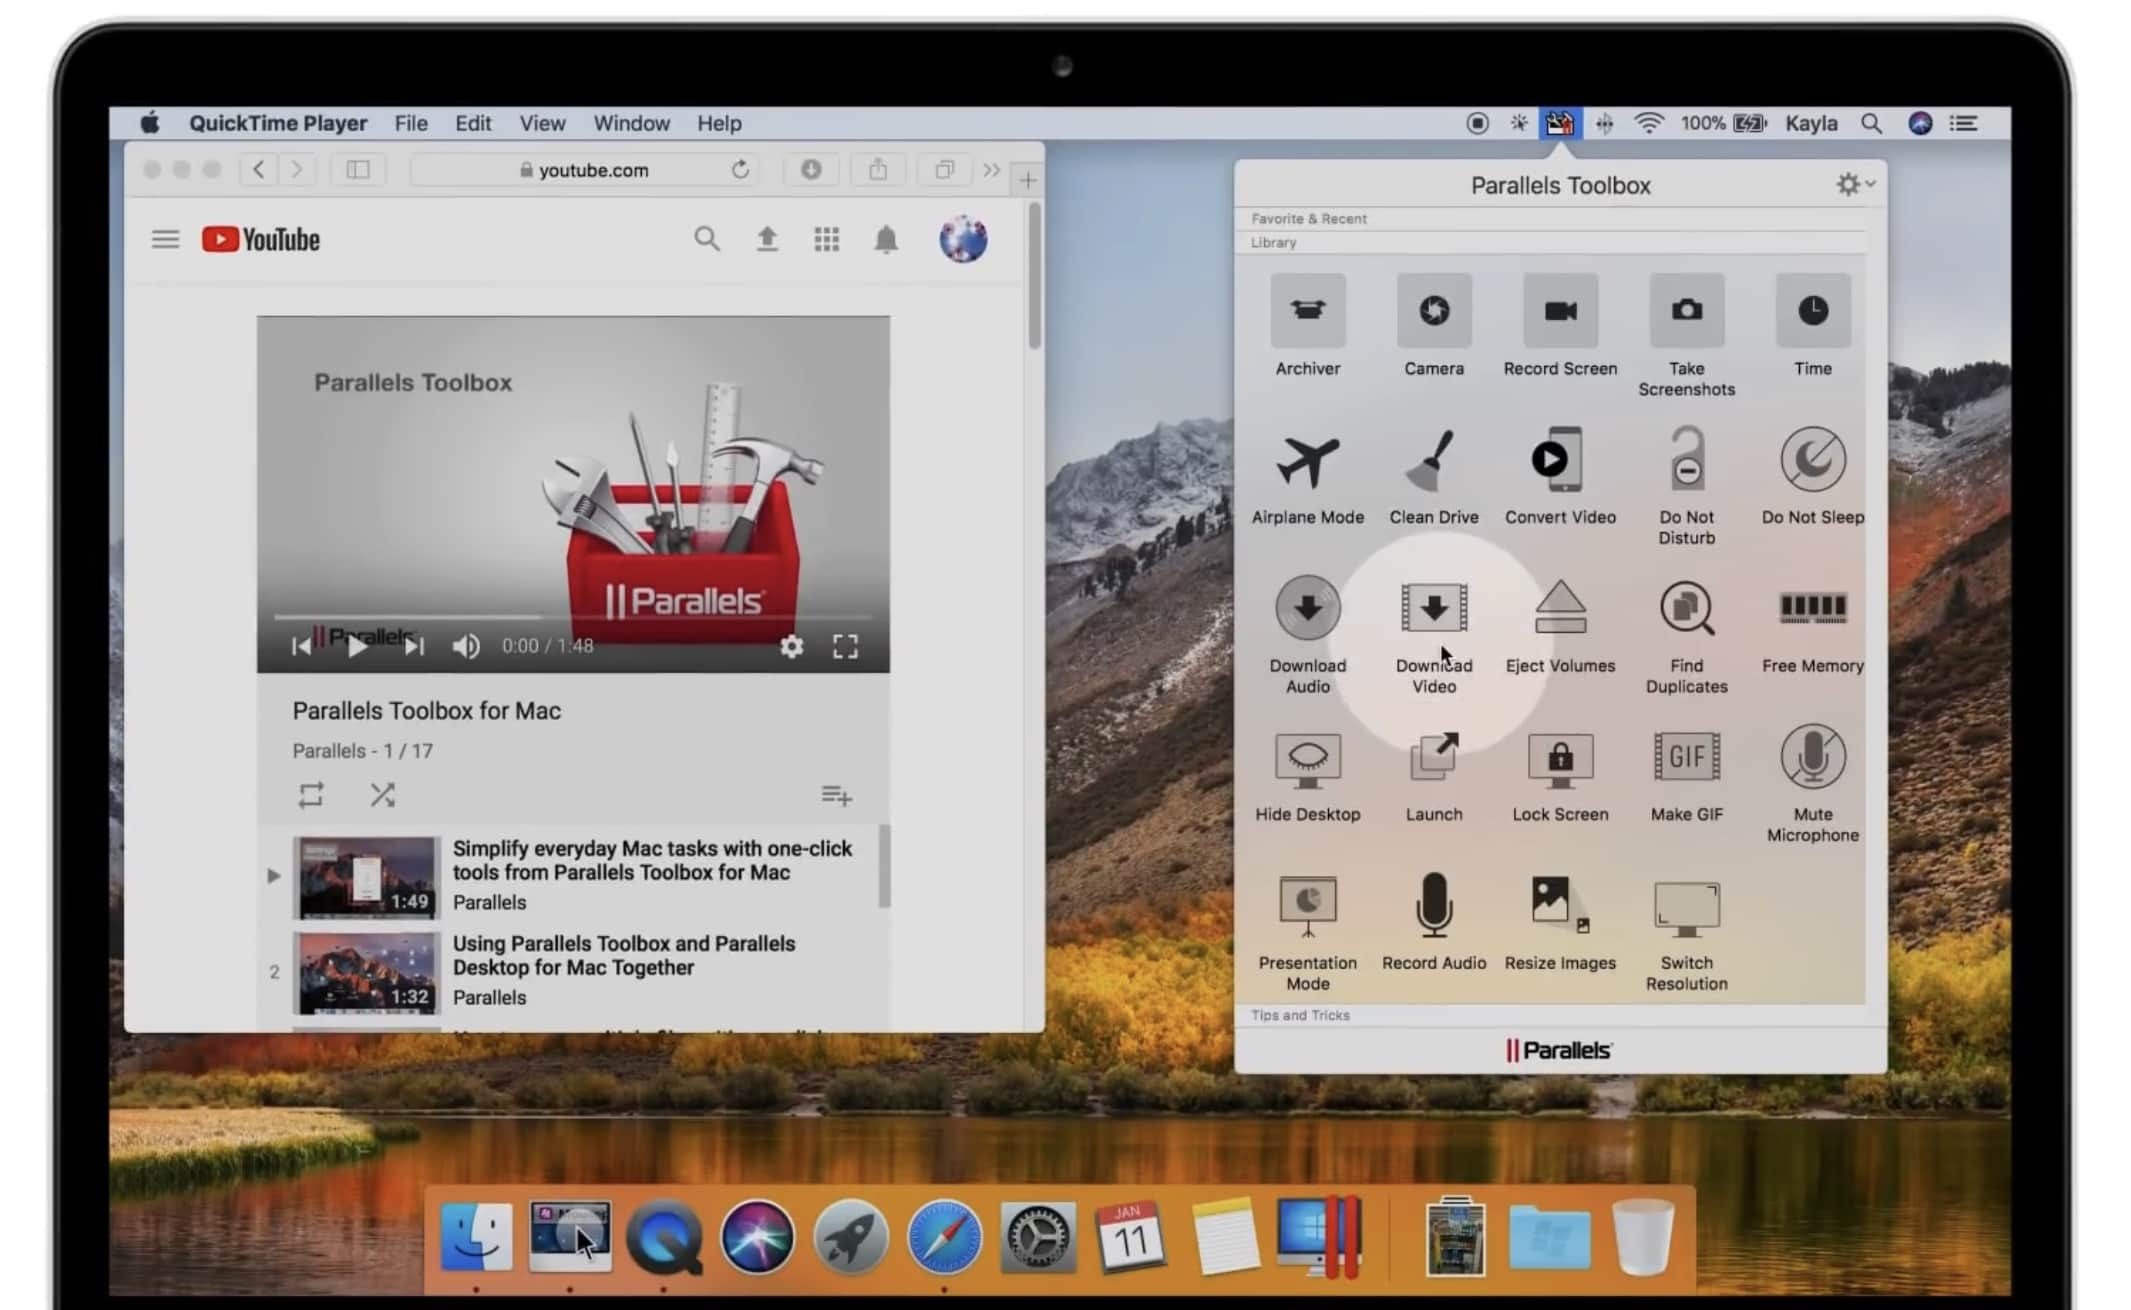 Parallels-Toolbox